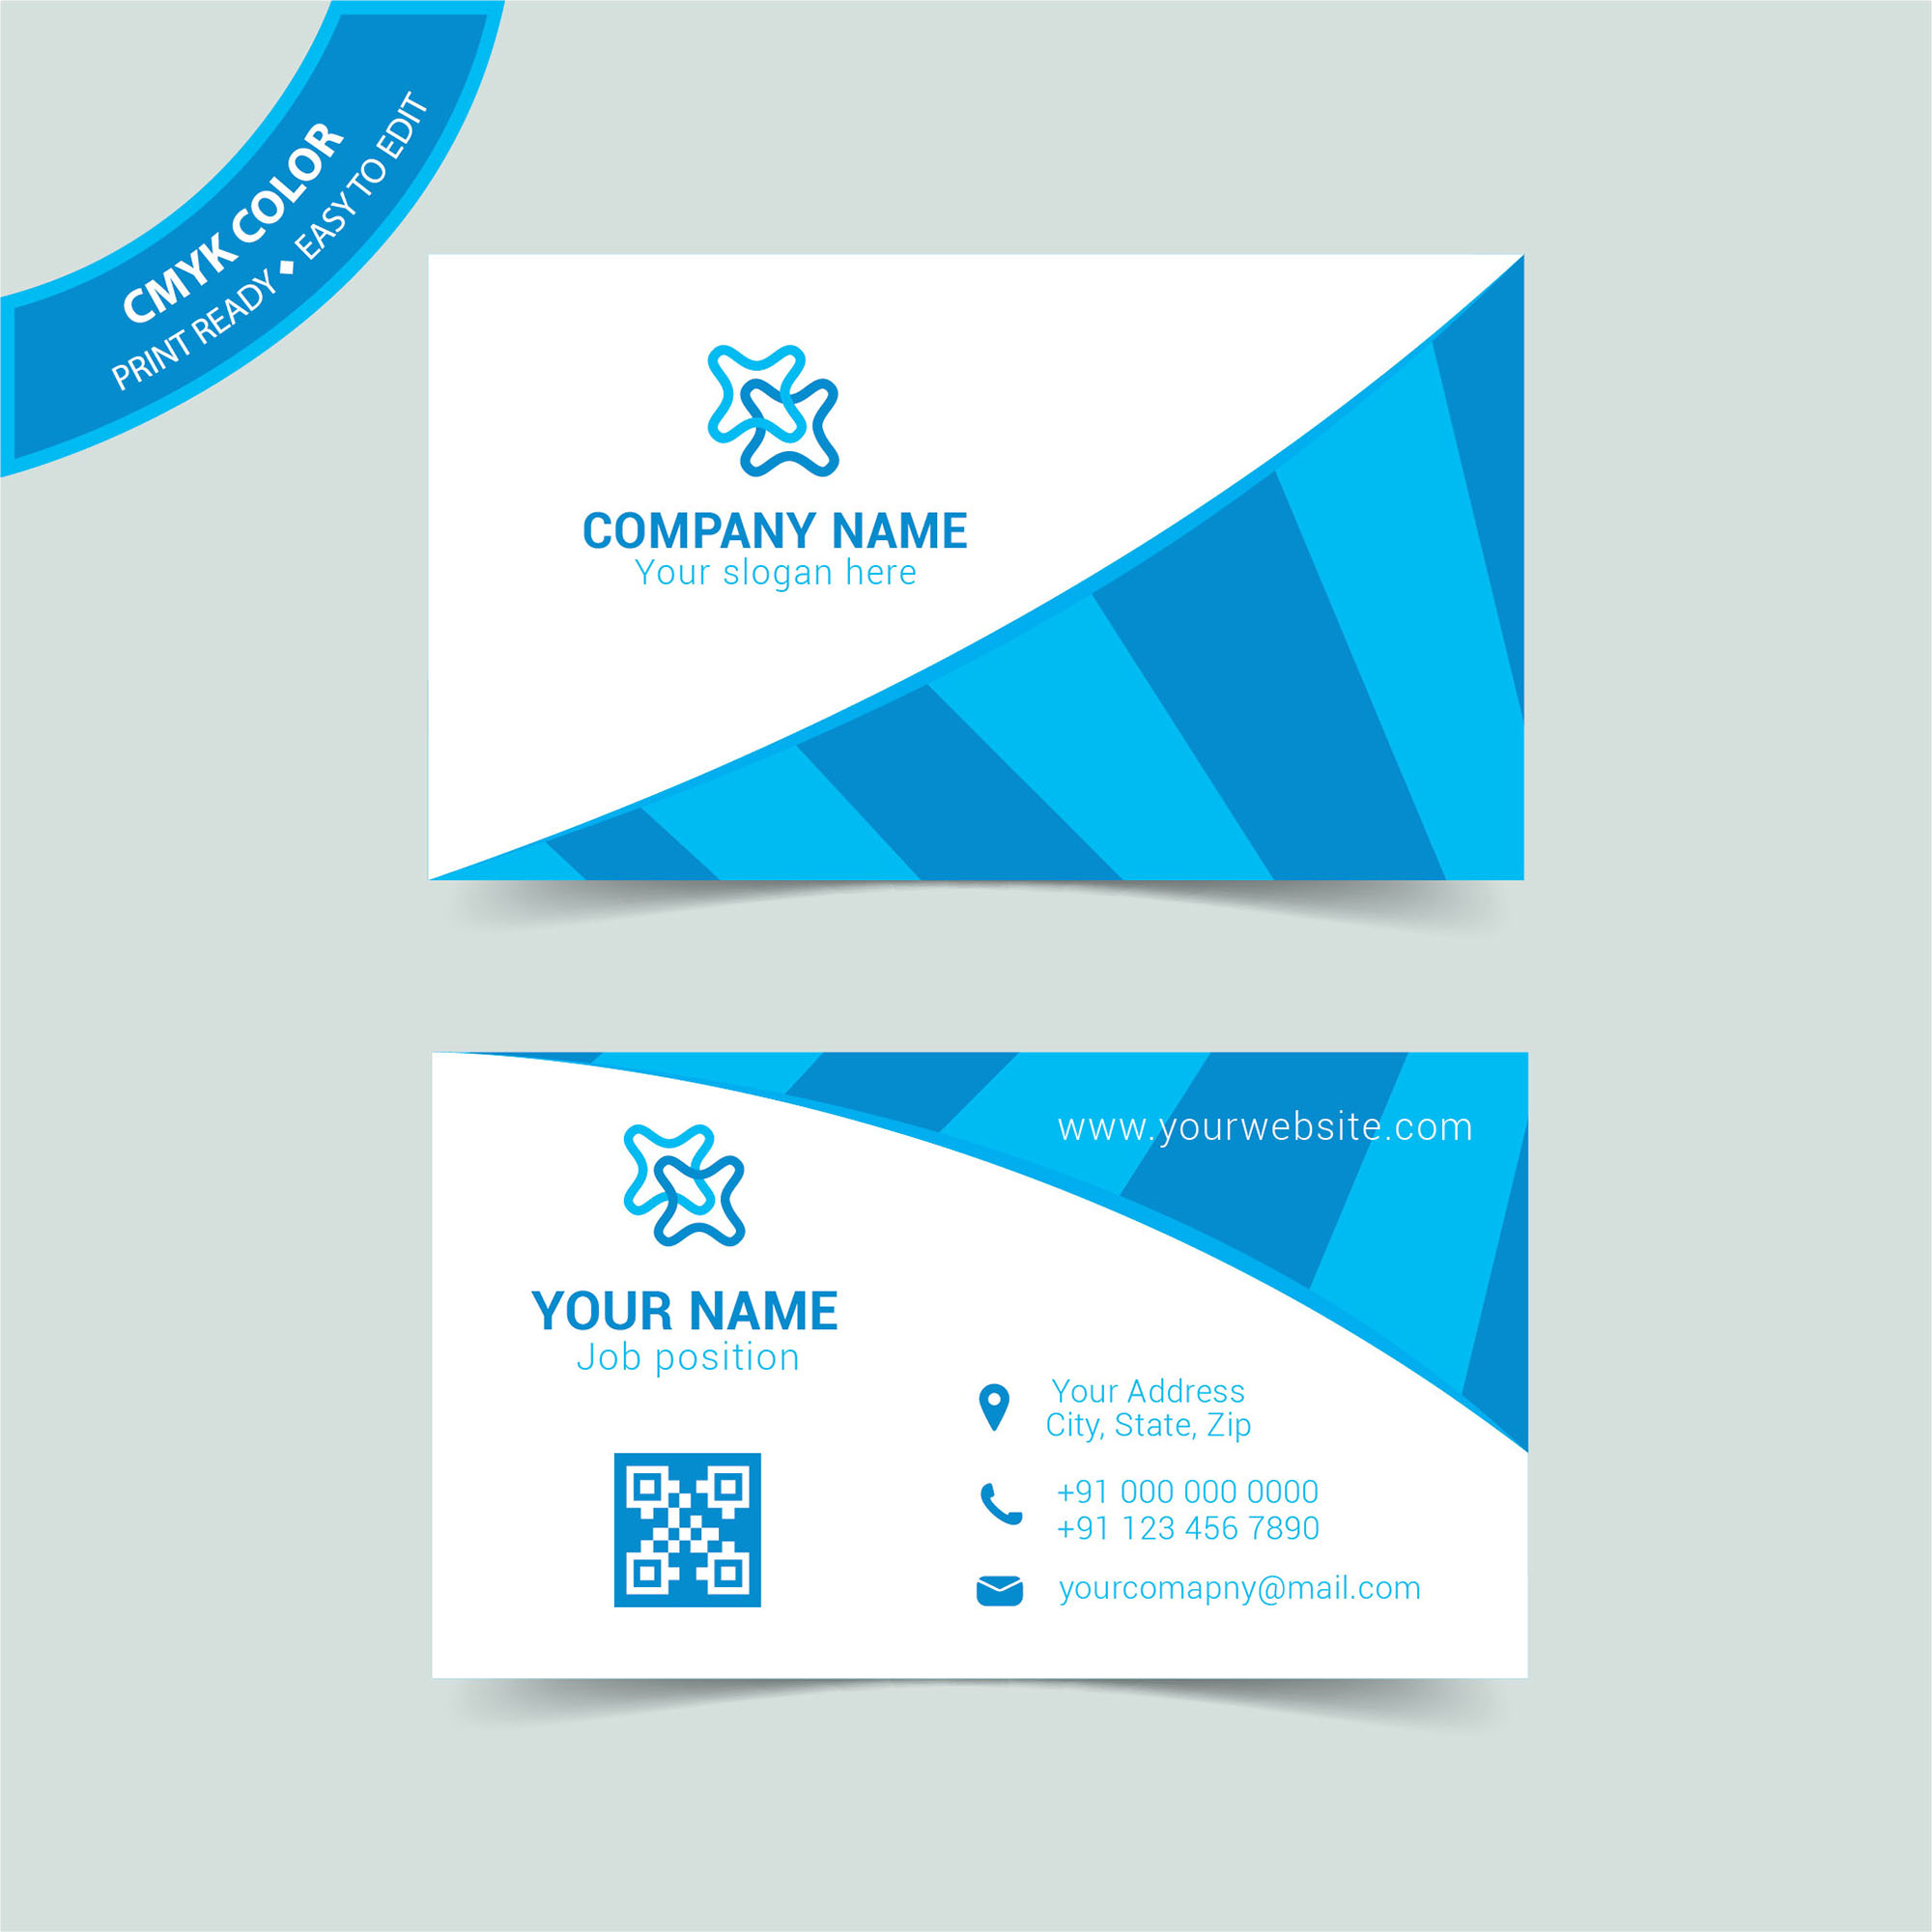 Professional business card templates free download wisxi business card business cards business card design business card template design templates accmission Choice Image